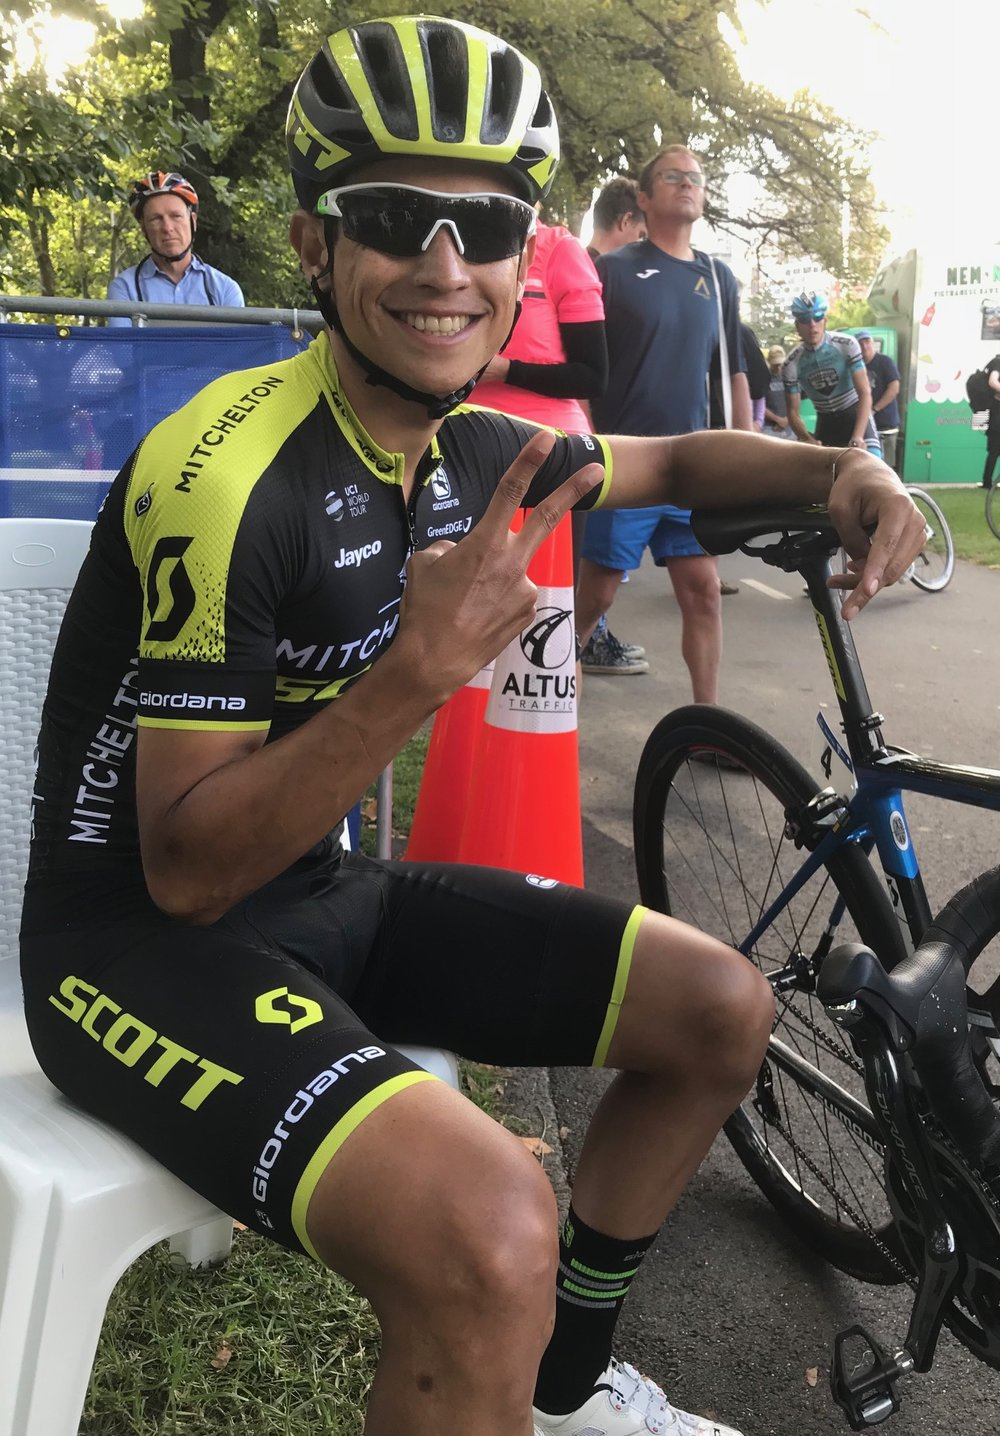 Herald SunTour 18 Prologue Time Trial - Melbourne Southbank .... the original Mr Happy Wheels is one Esteban Chaves who always carries a cheery smile (photo MO'R)